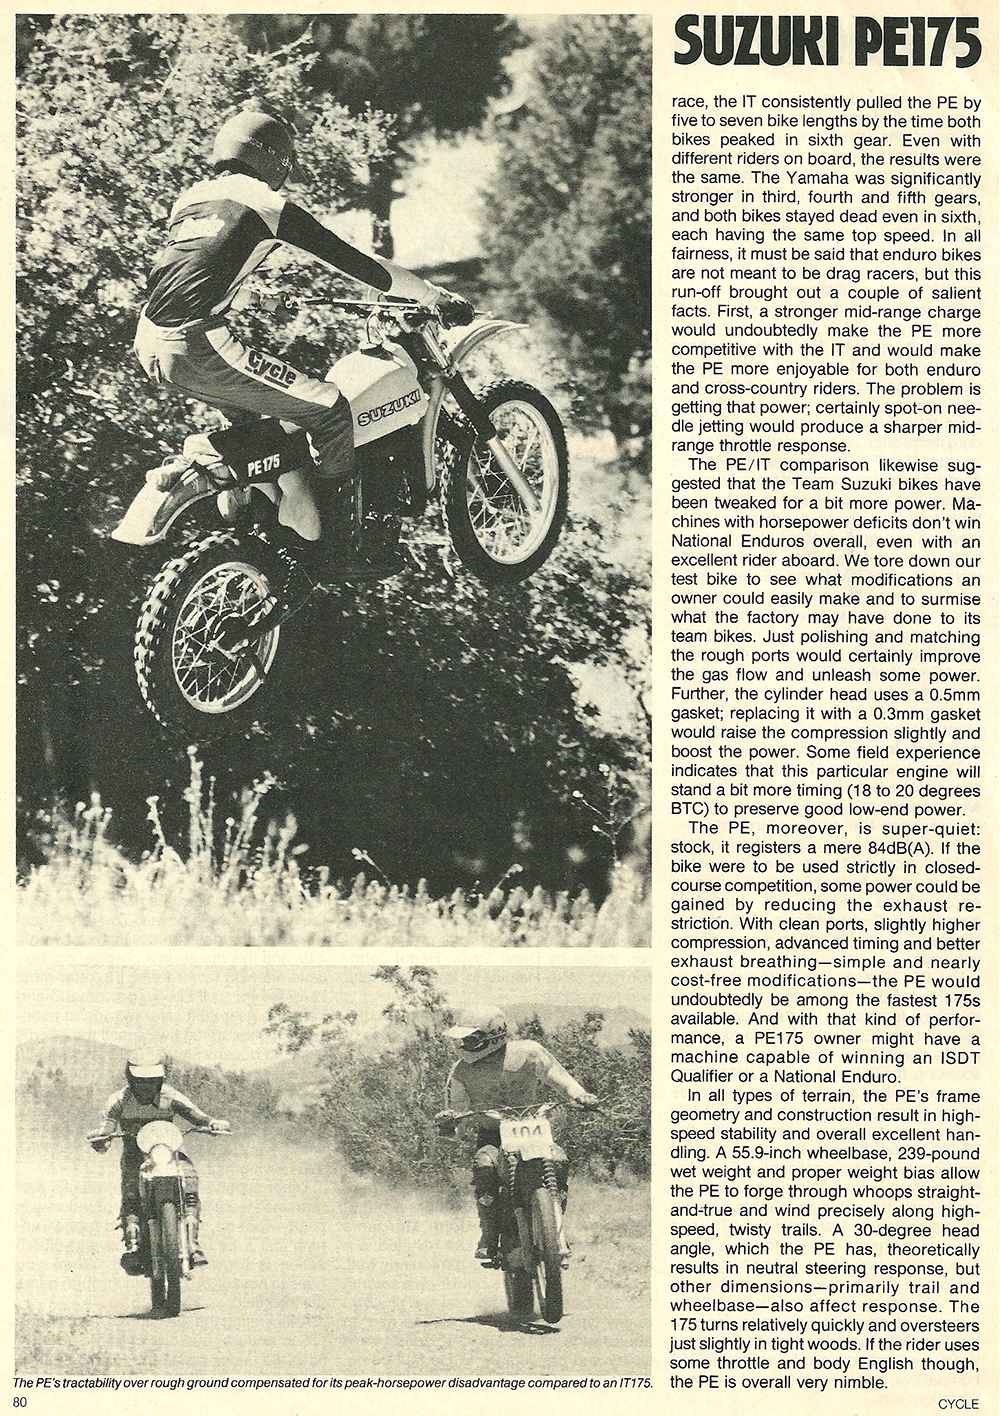 1978 Suzuki PE175 road test 05.jpg